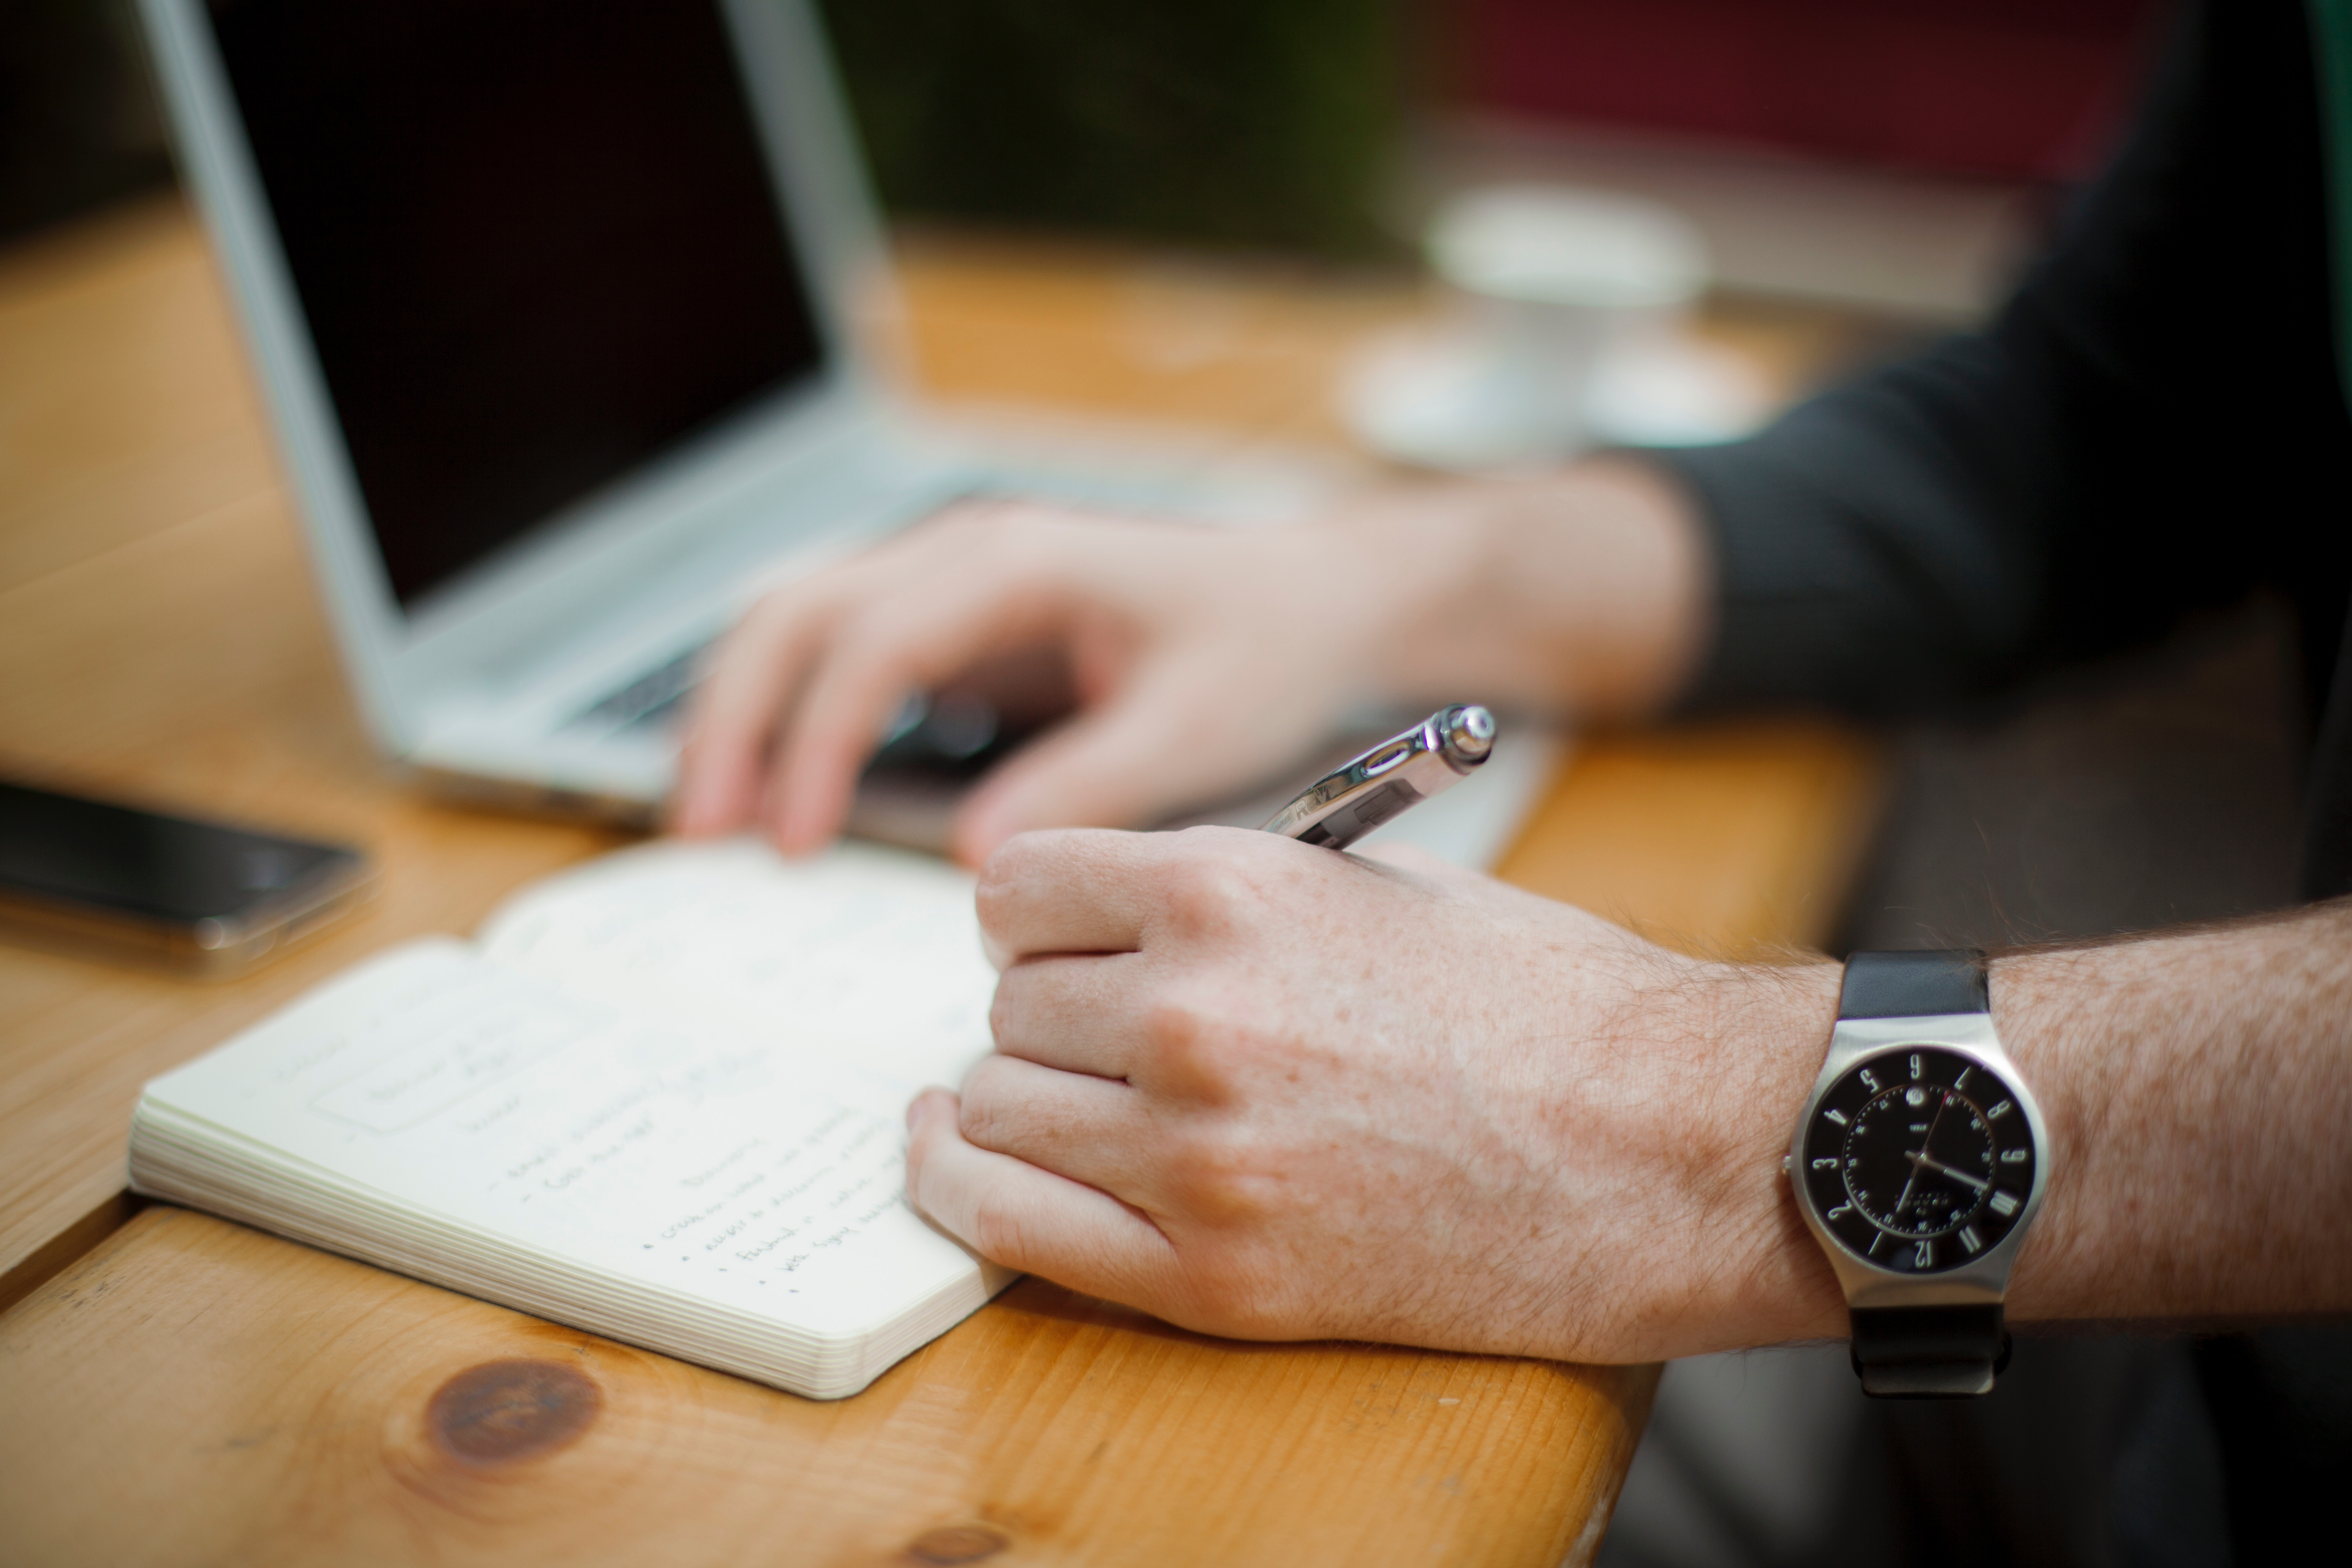 A close-up of a man's watch and hand as he's writing in a notebook, managing time and priorities